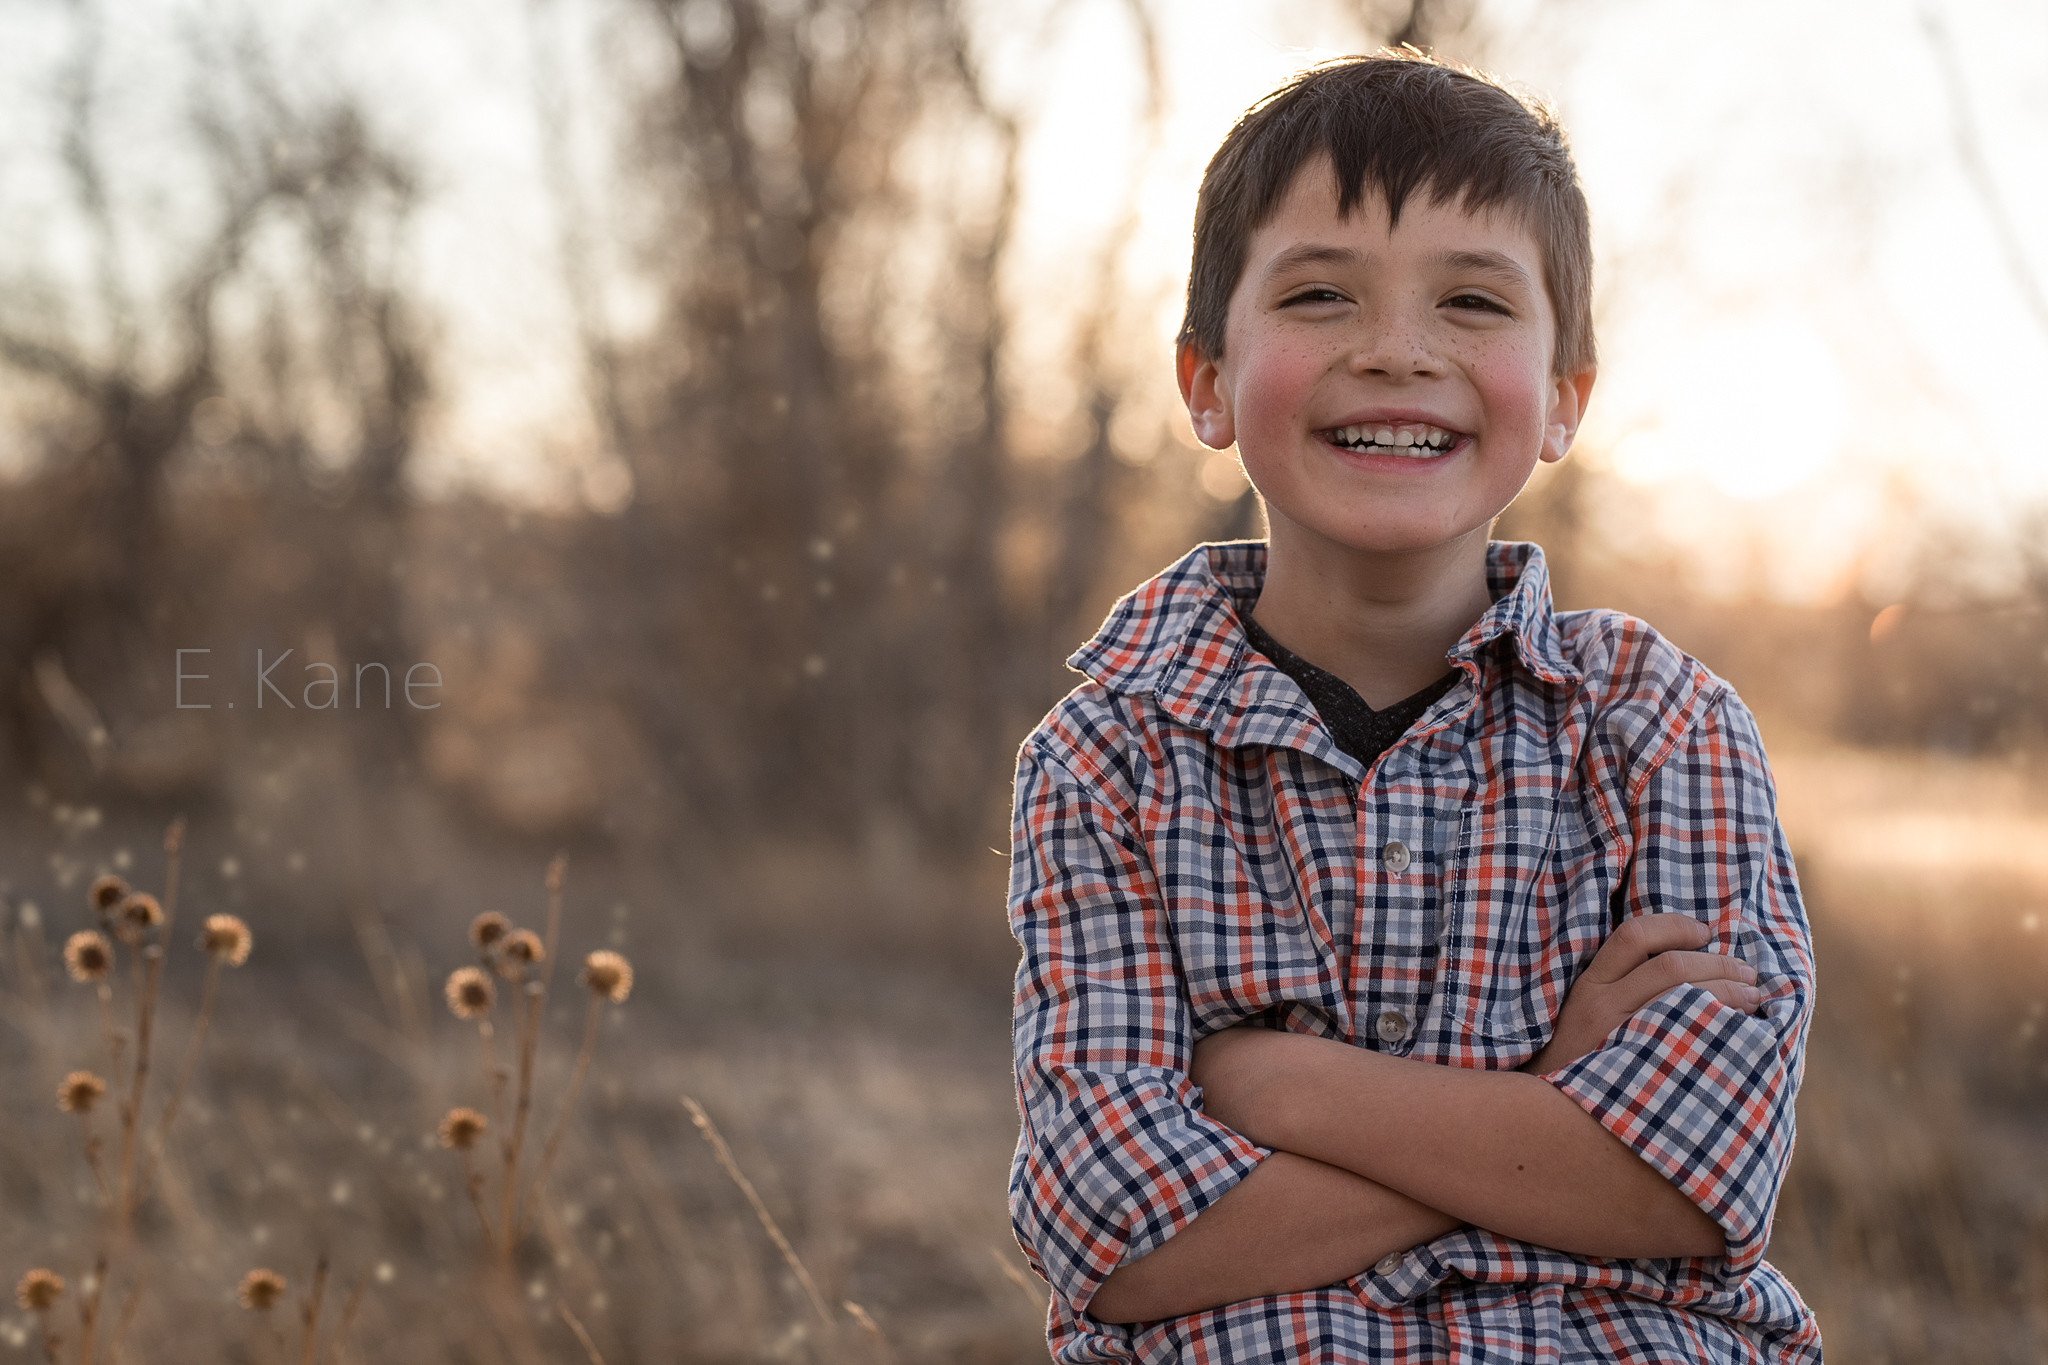 evan kane-portrait-photography-fort collins-colorado